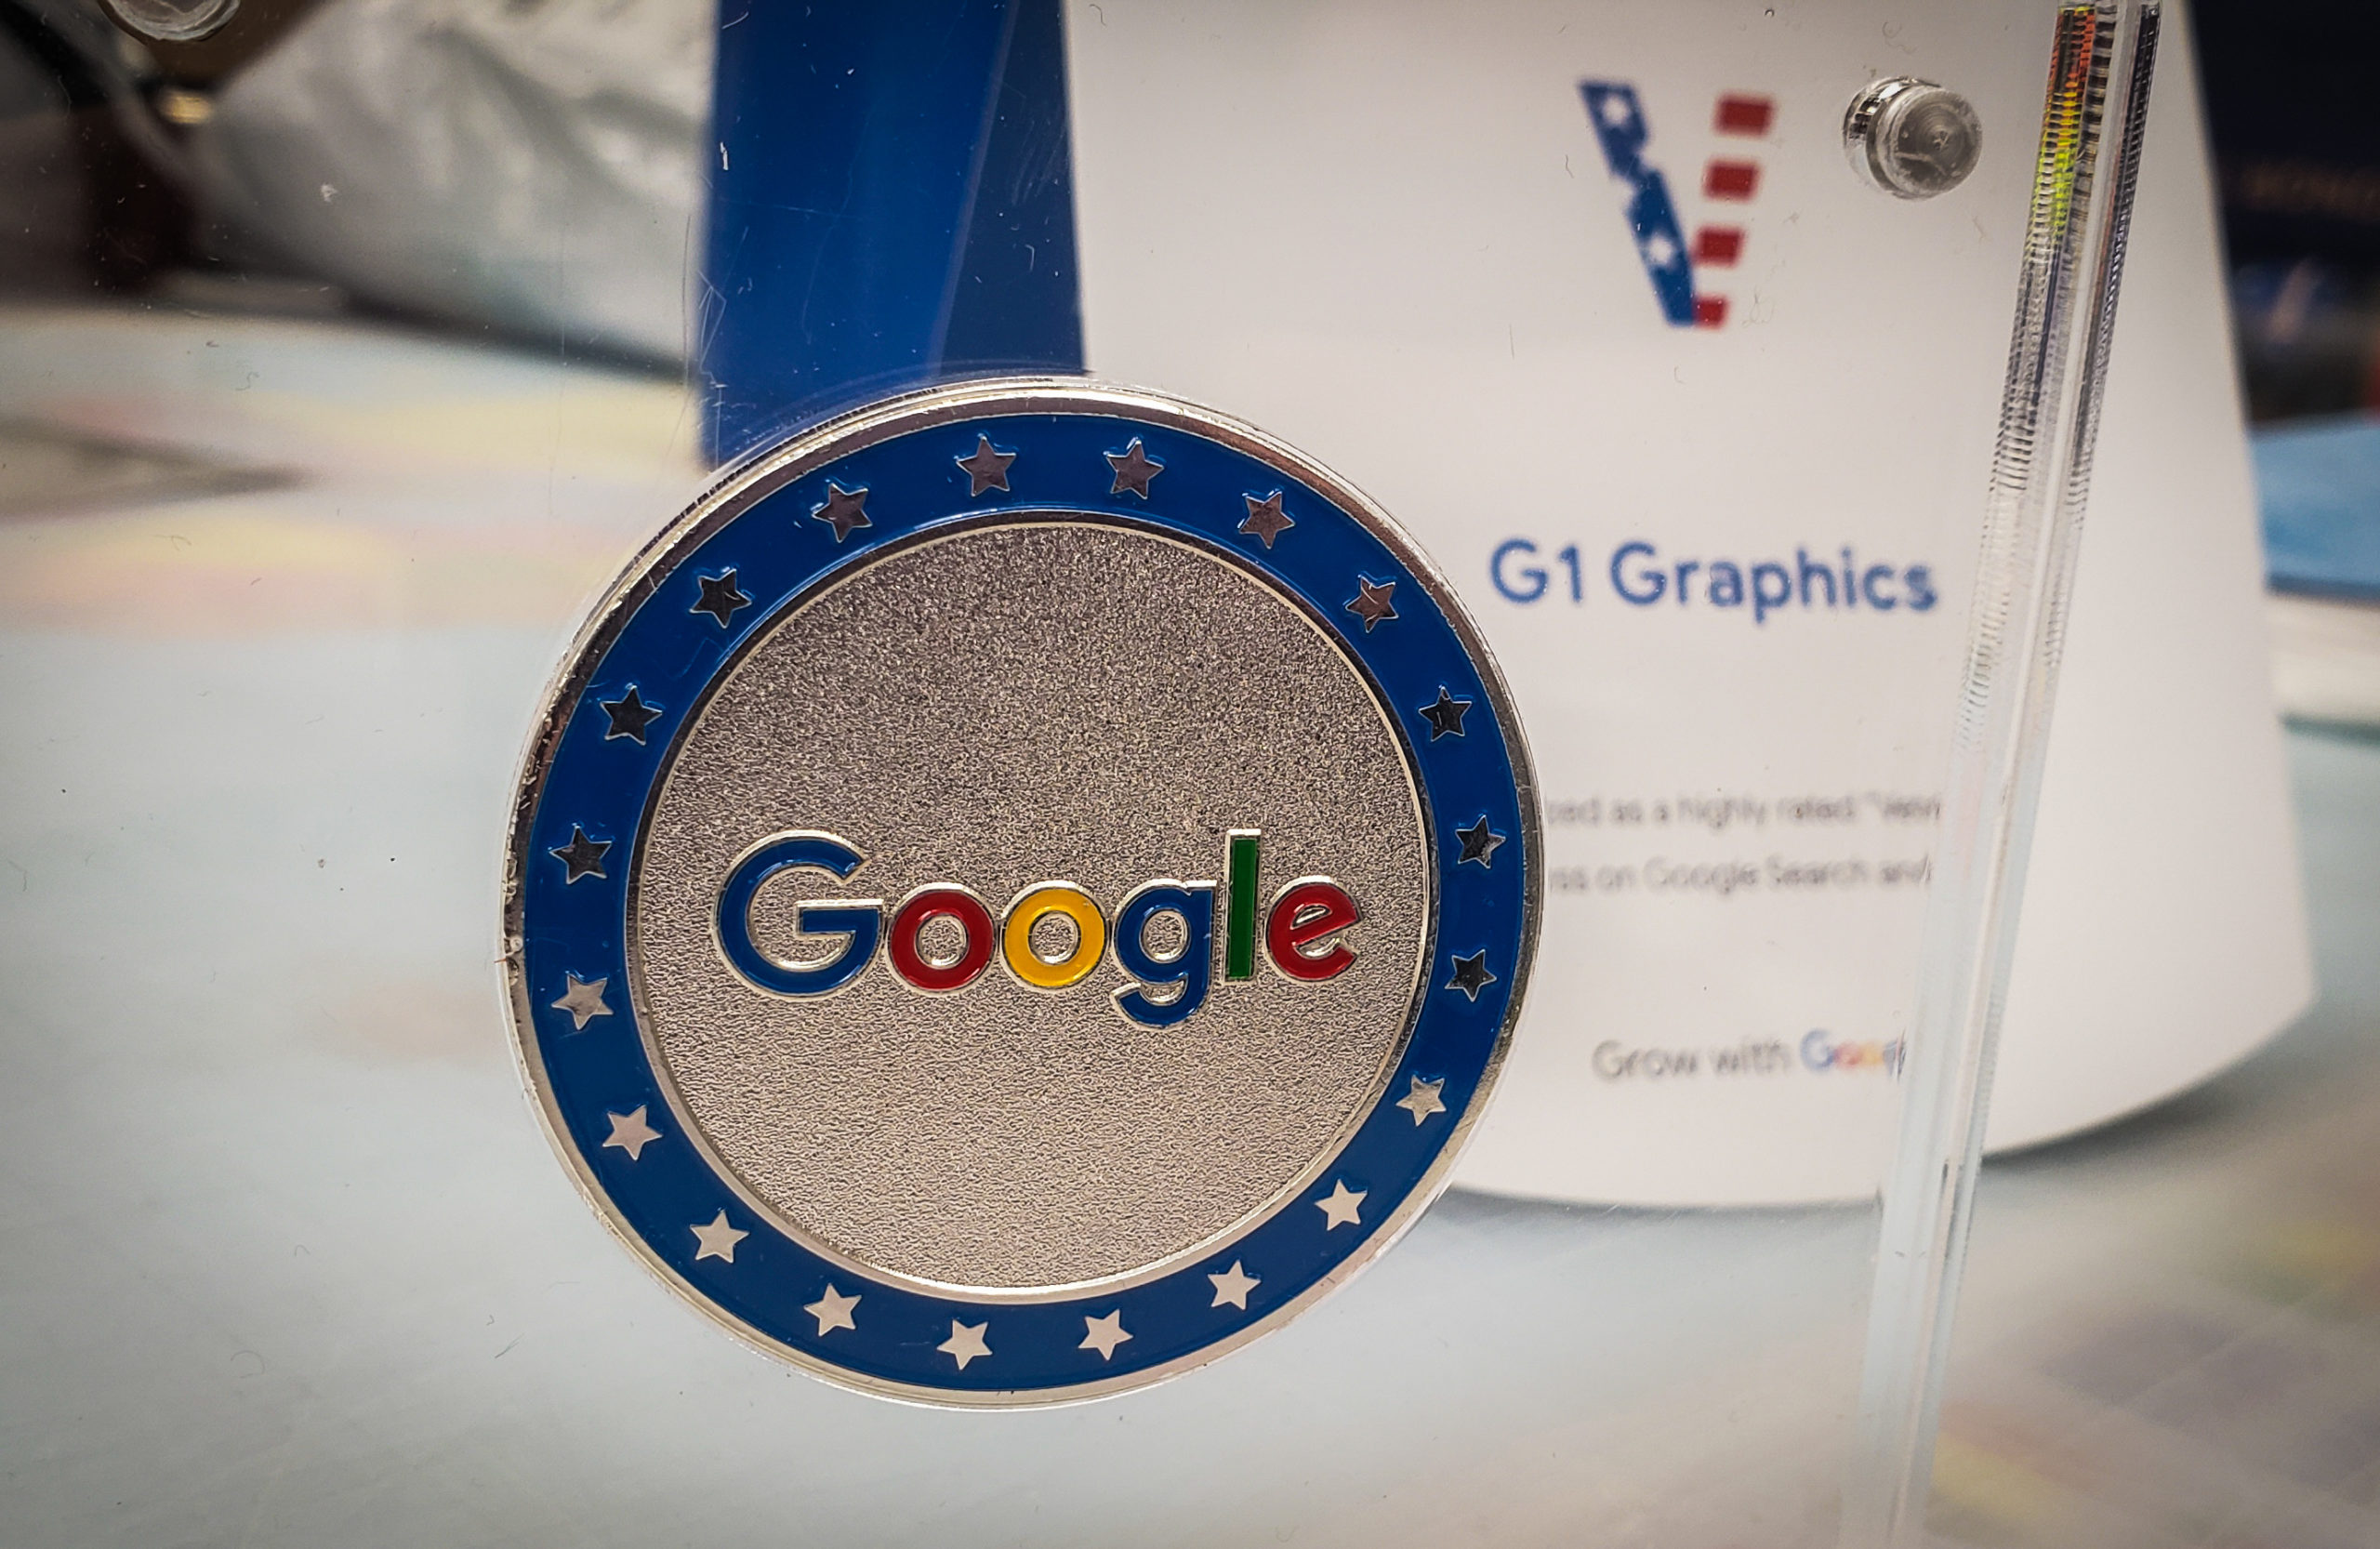 G1 Graphics Receives Grow With Google Challenge Coin G1